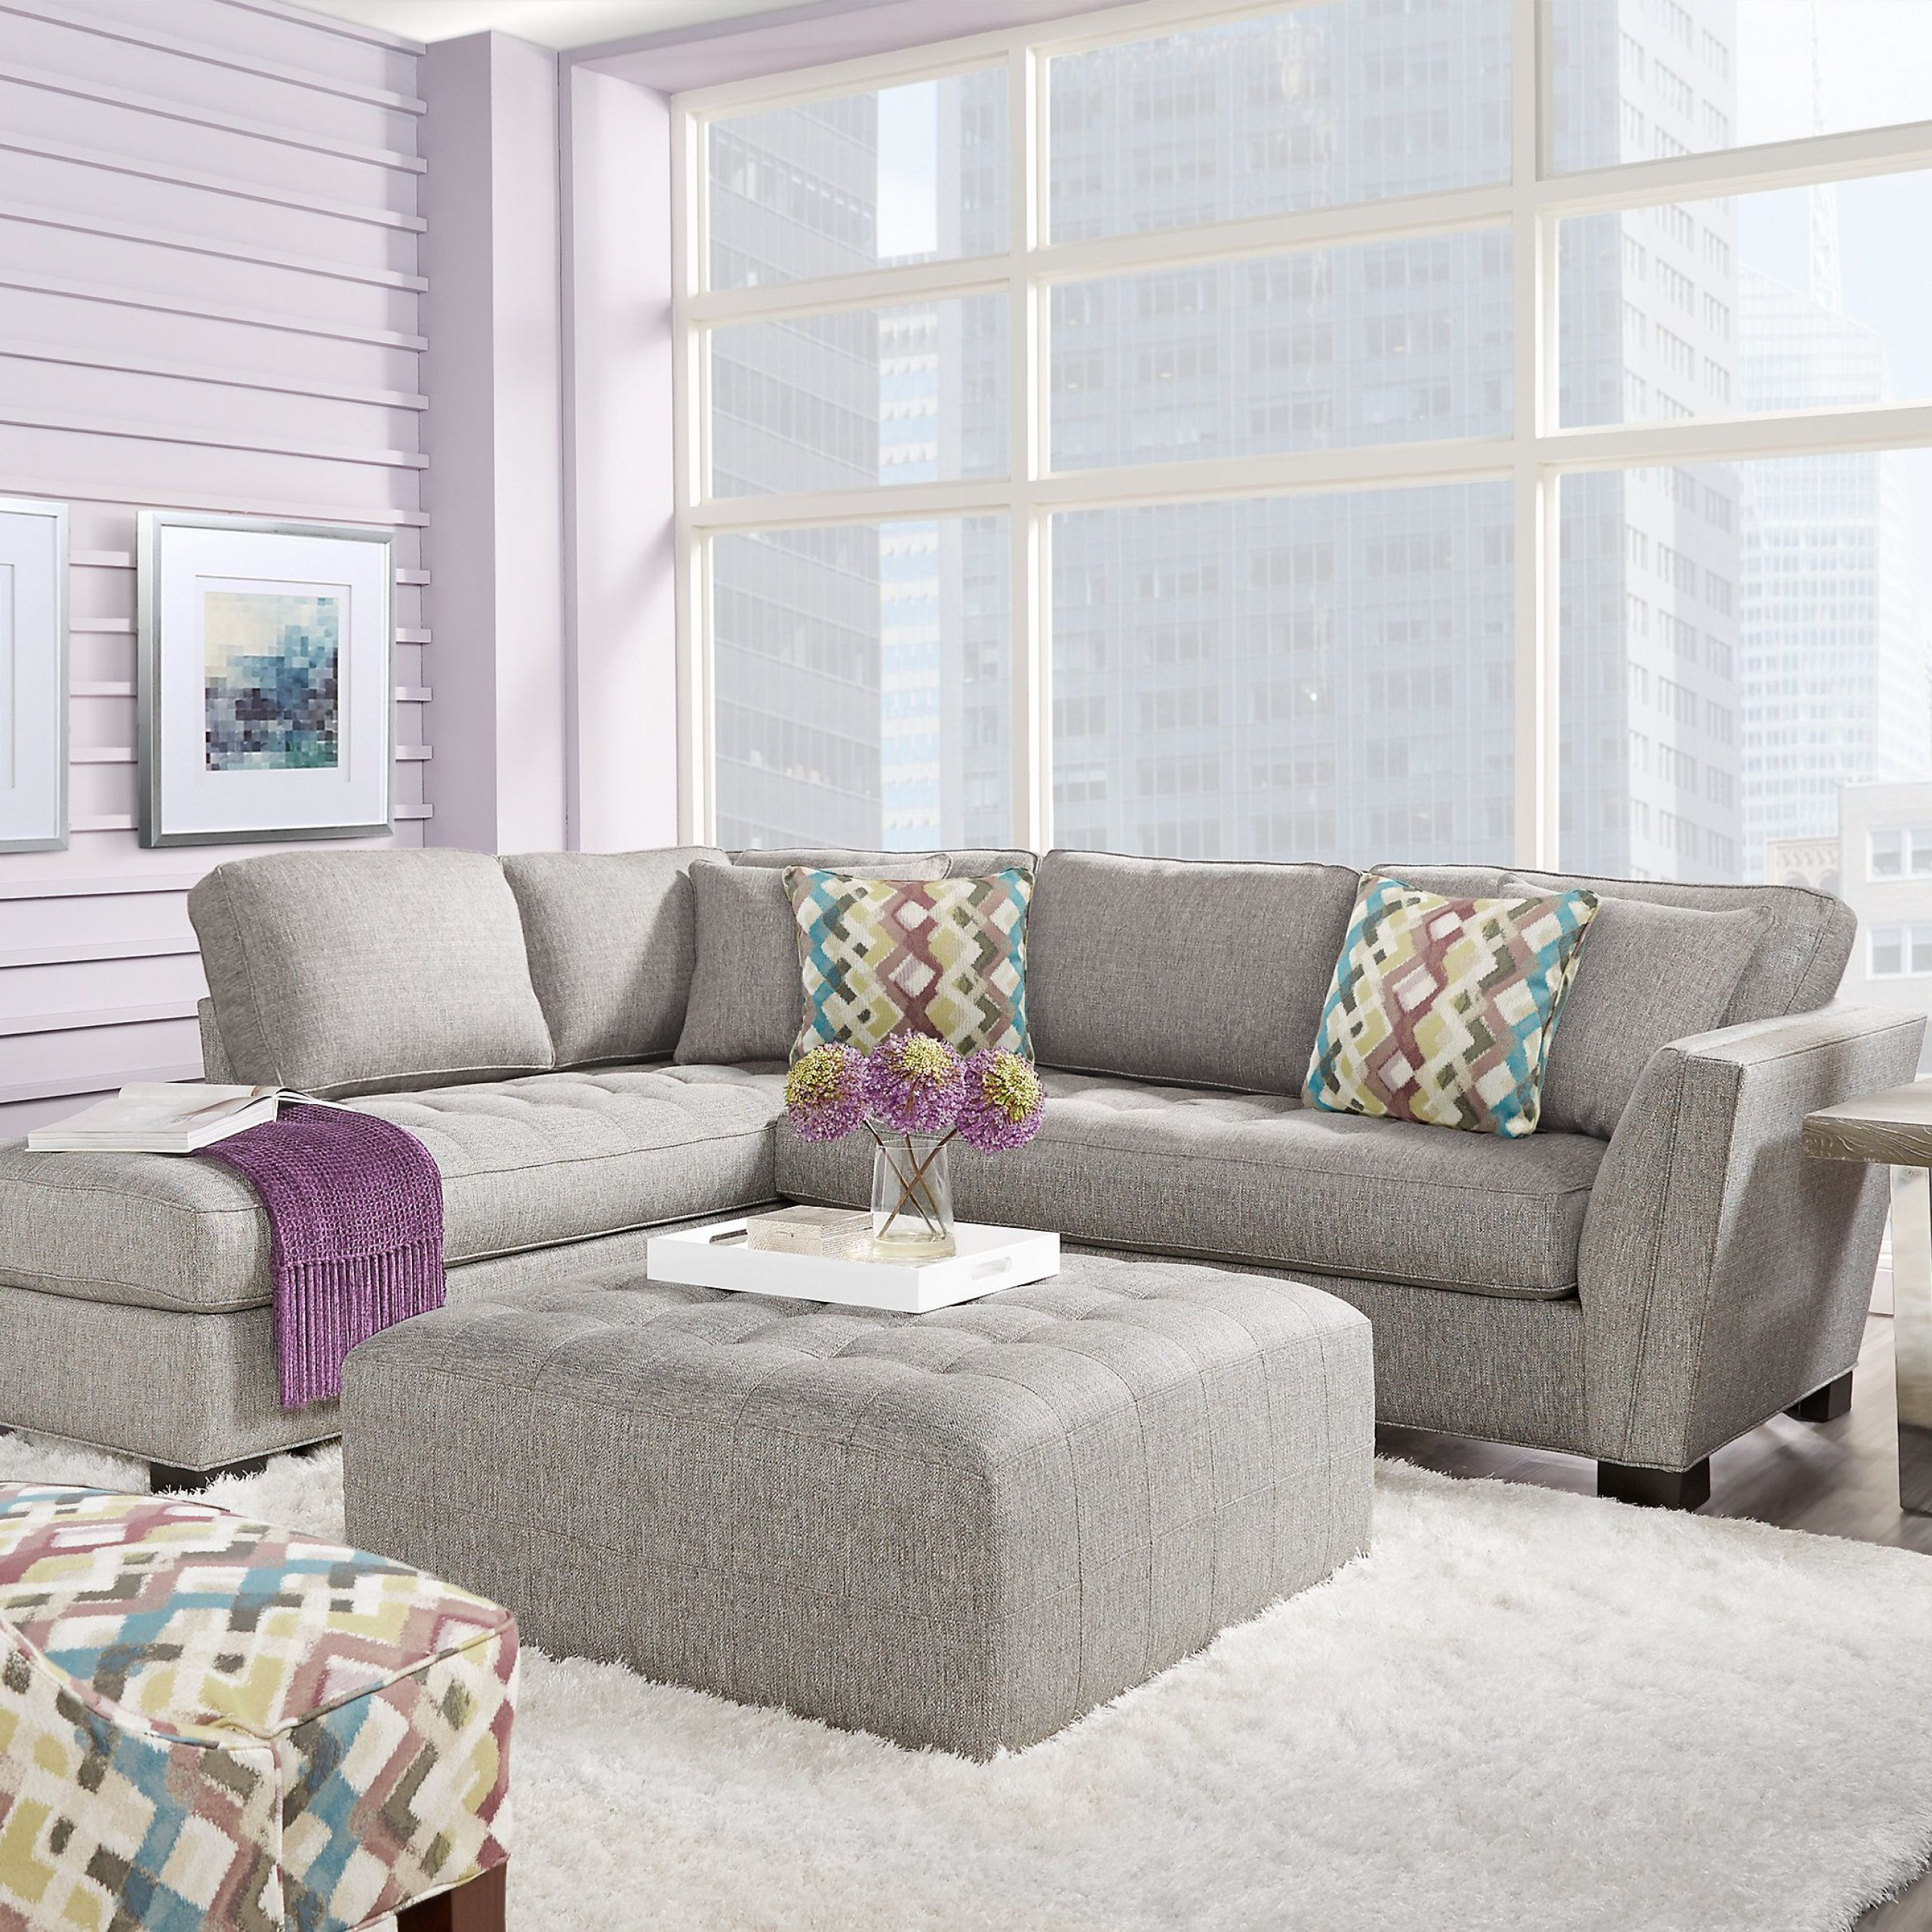 Calvin Concrete Gray Sofas Pertaining To 2018 Cindy Crawford Home Calvin Heights Gray 2 Pc Sectional (View 2 of 20)